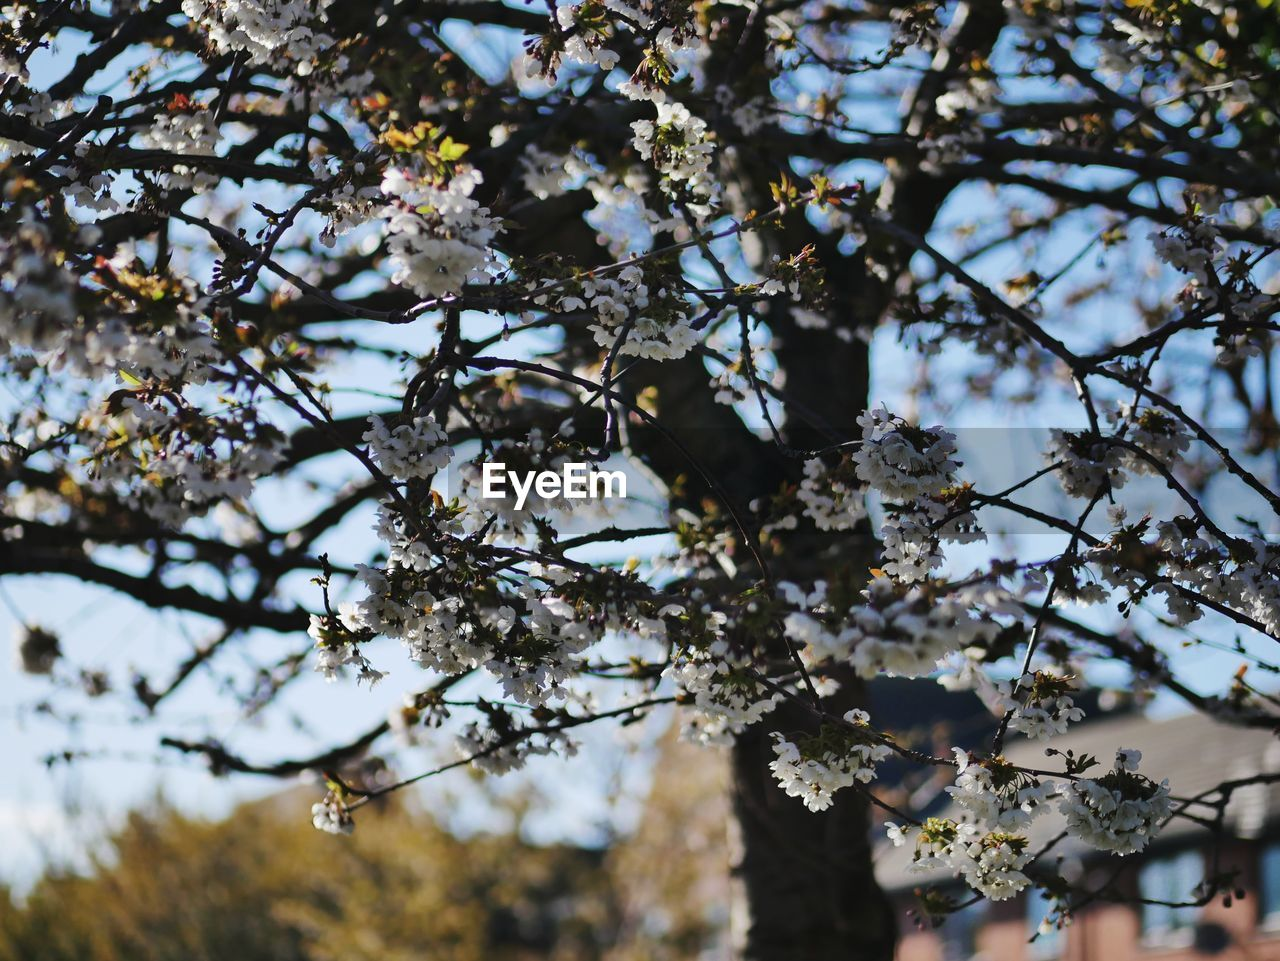 tree, plant, flowering plant, branch, low angle view, flower, blossom, growth, springtime, fragility, beauty in nature, nature, vulnerability, day, focus on foreground, sky, freshness, no people, fruit tree, cherry blossom, outdoors, cherry tree, spring